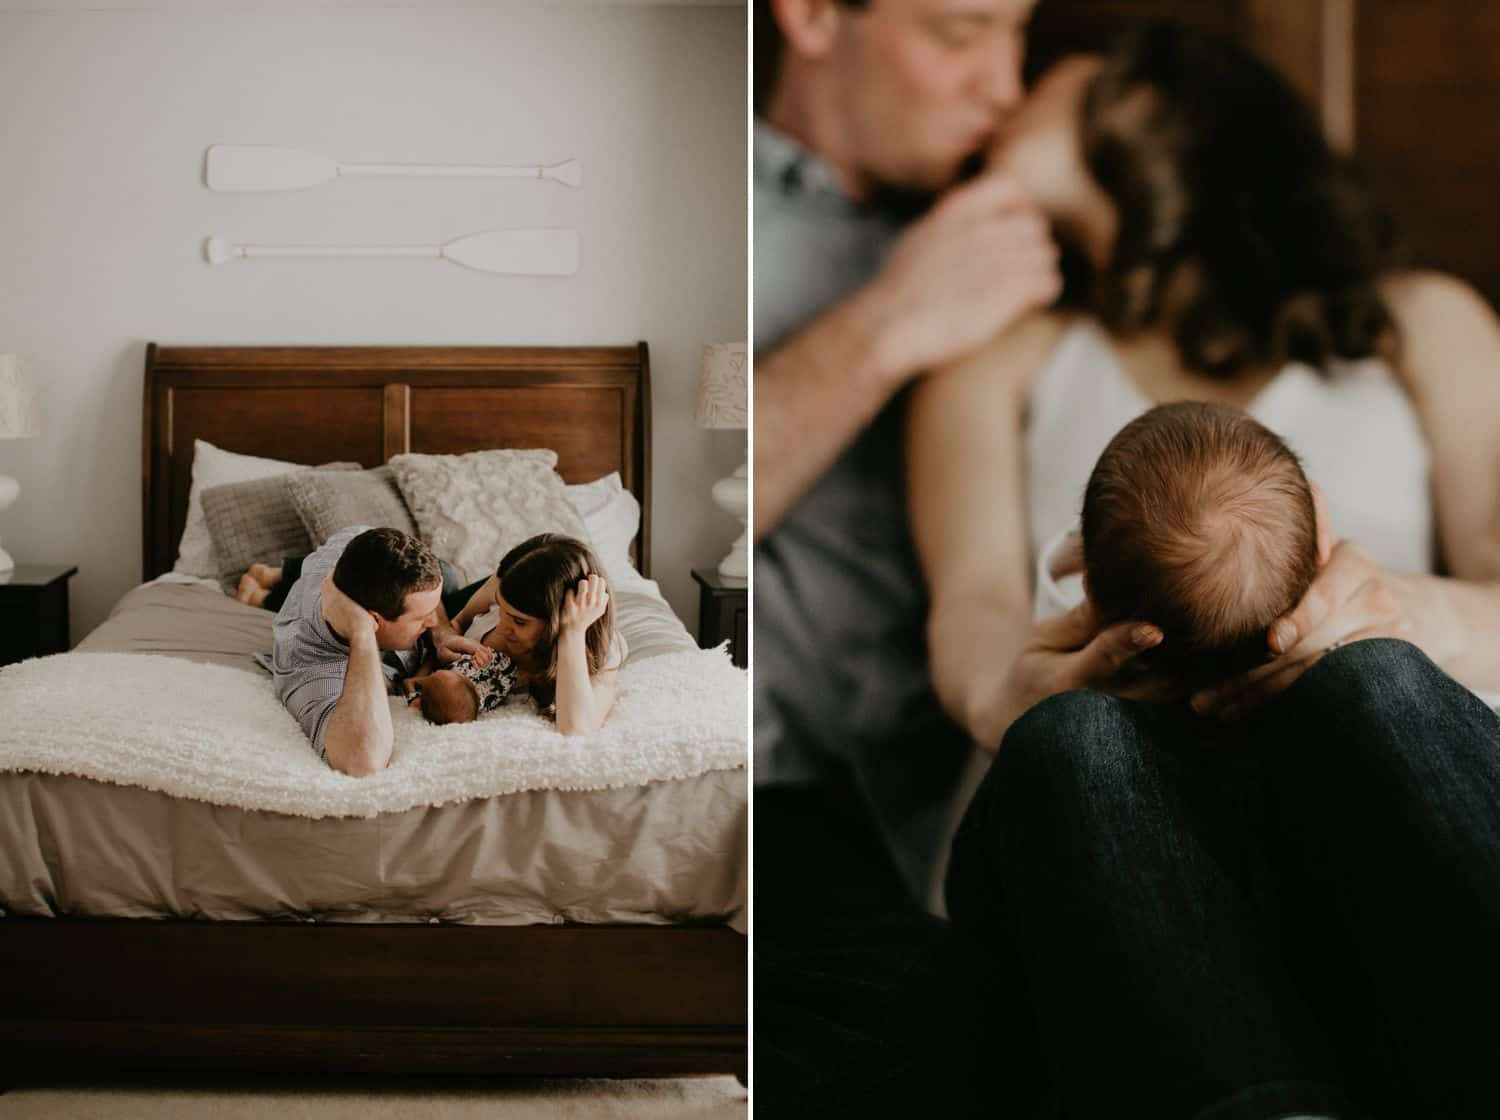 Lifestyle Newborn Photos: Left / Two parents lie on their bed, heads toward the footboard, as their baby sleeps between them. Right / A man and woman kiss lightly in the background as their newborn baby rests on the woman's knees. Only the baby's tiny head is in focus.